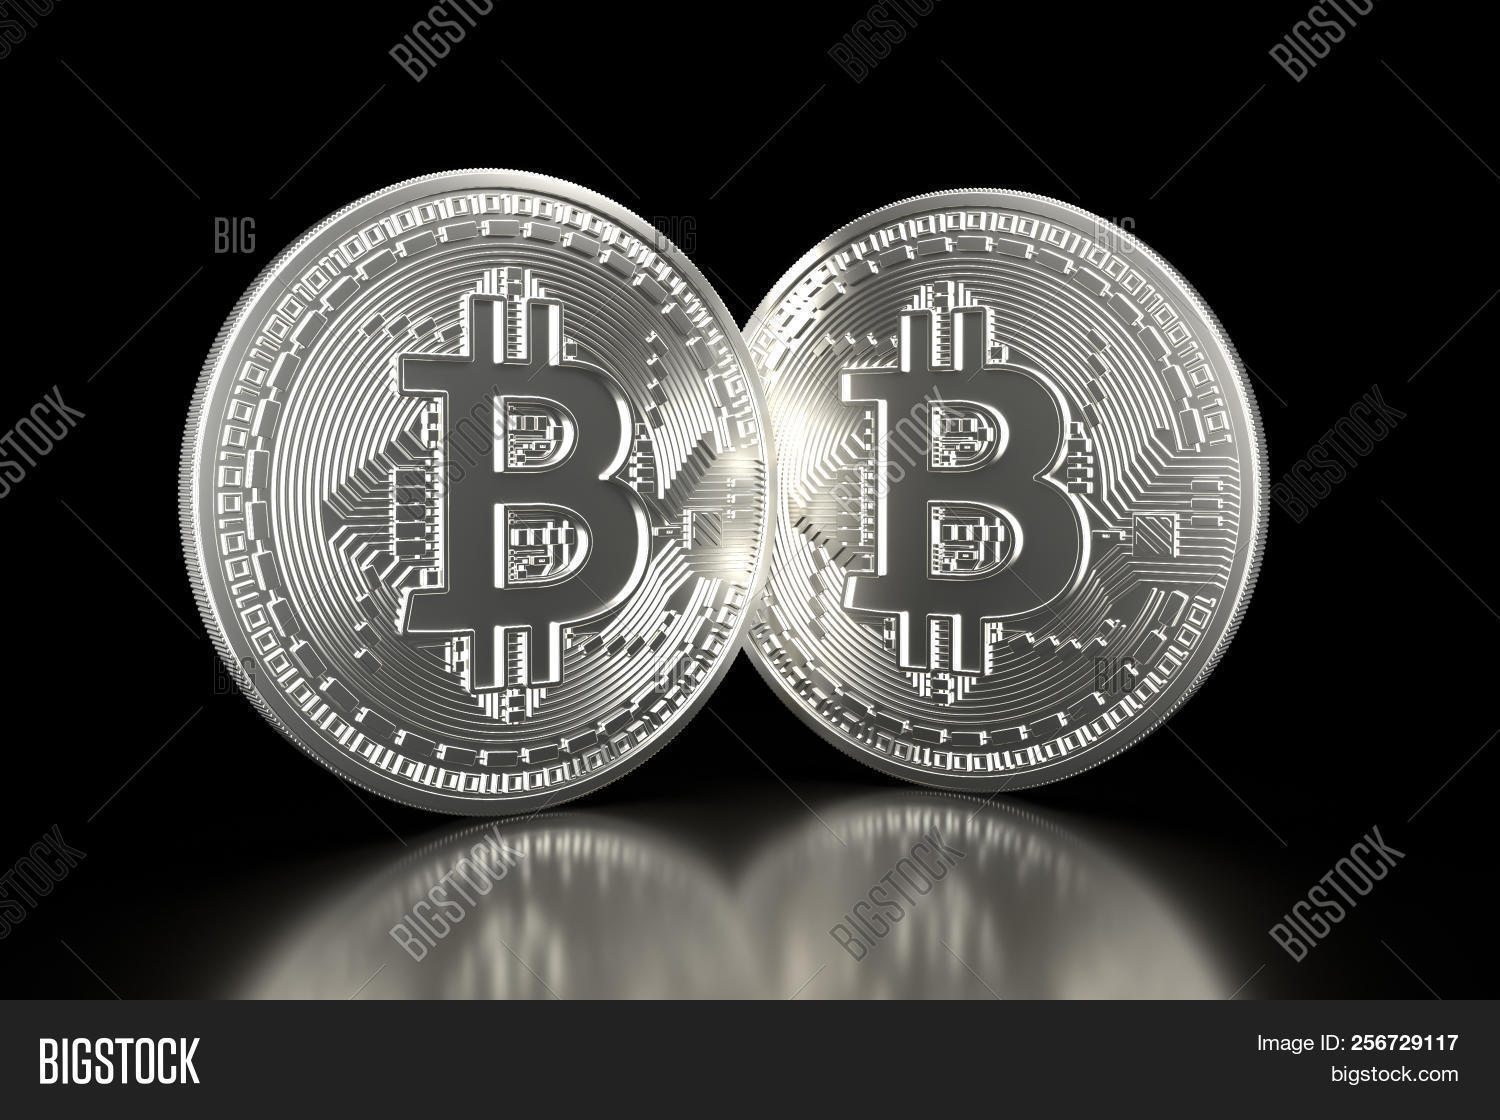 Bitcoin Silver Coins Image Photo Free Trial Bigstock